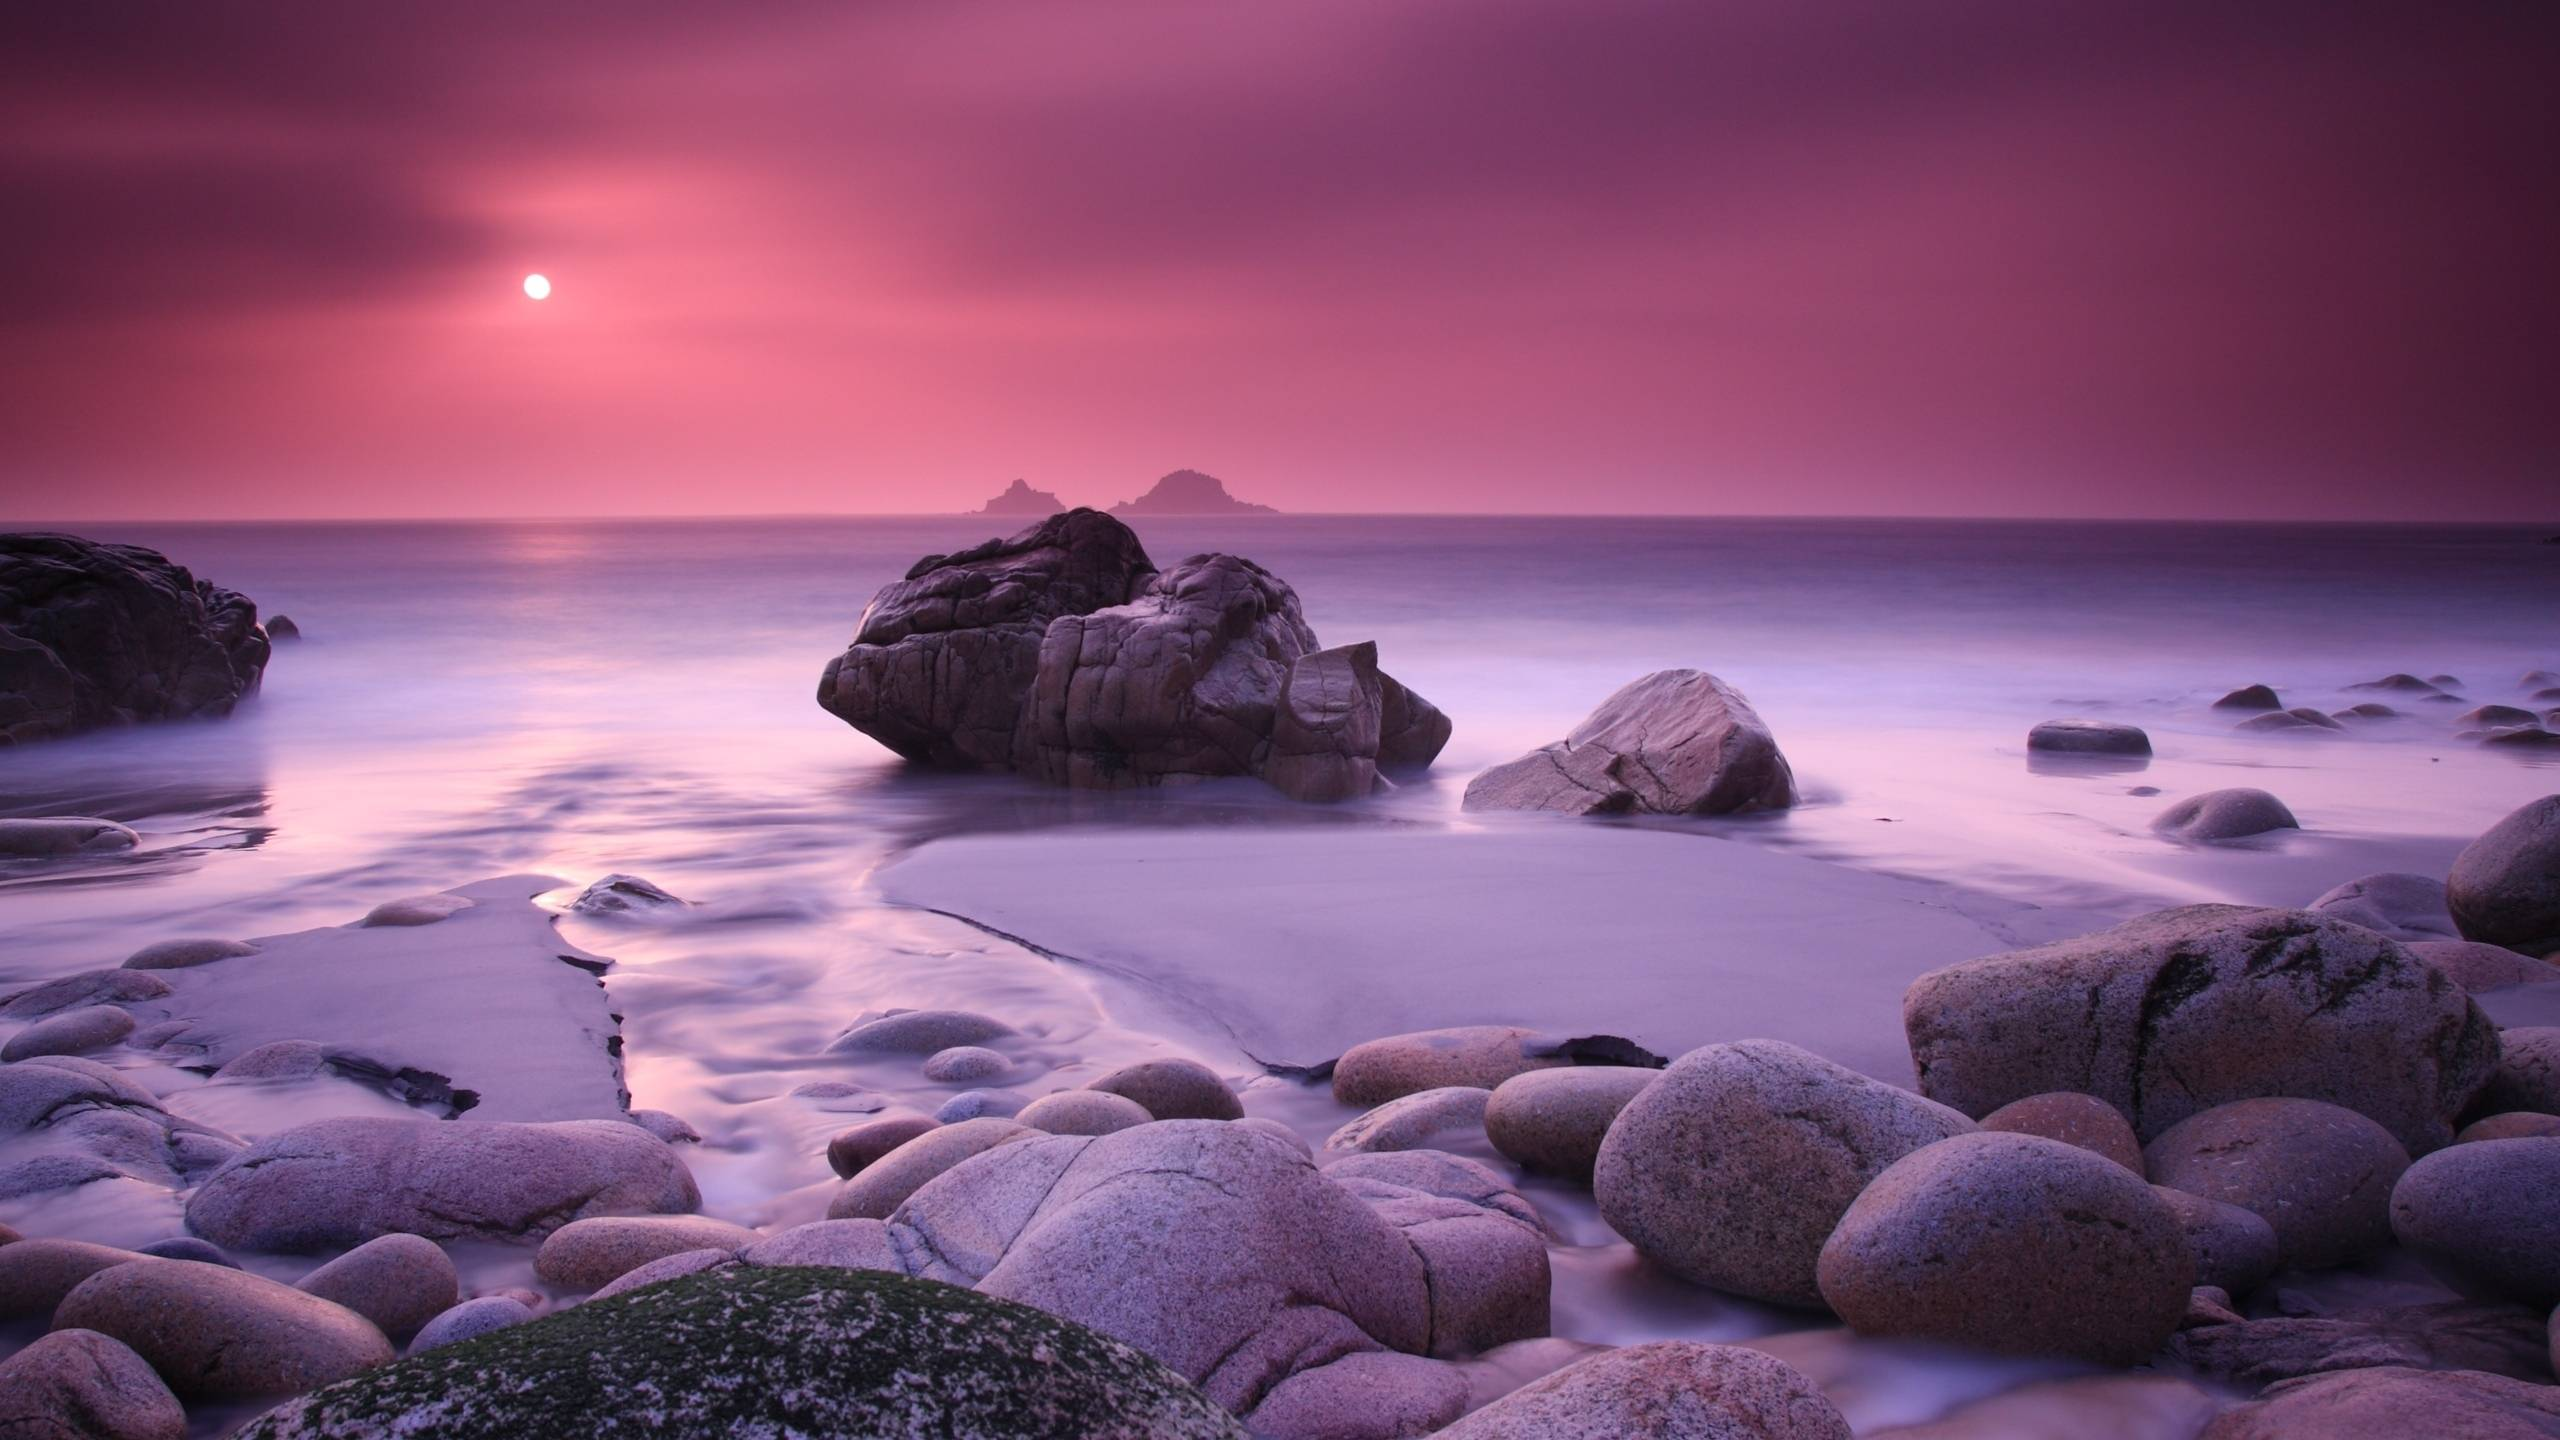 Pink Haze And Stones Wallpaper For Your IMac